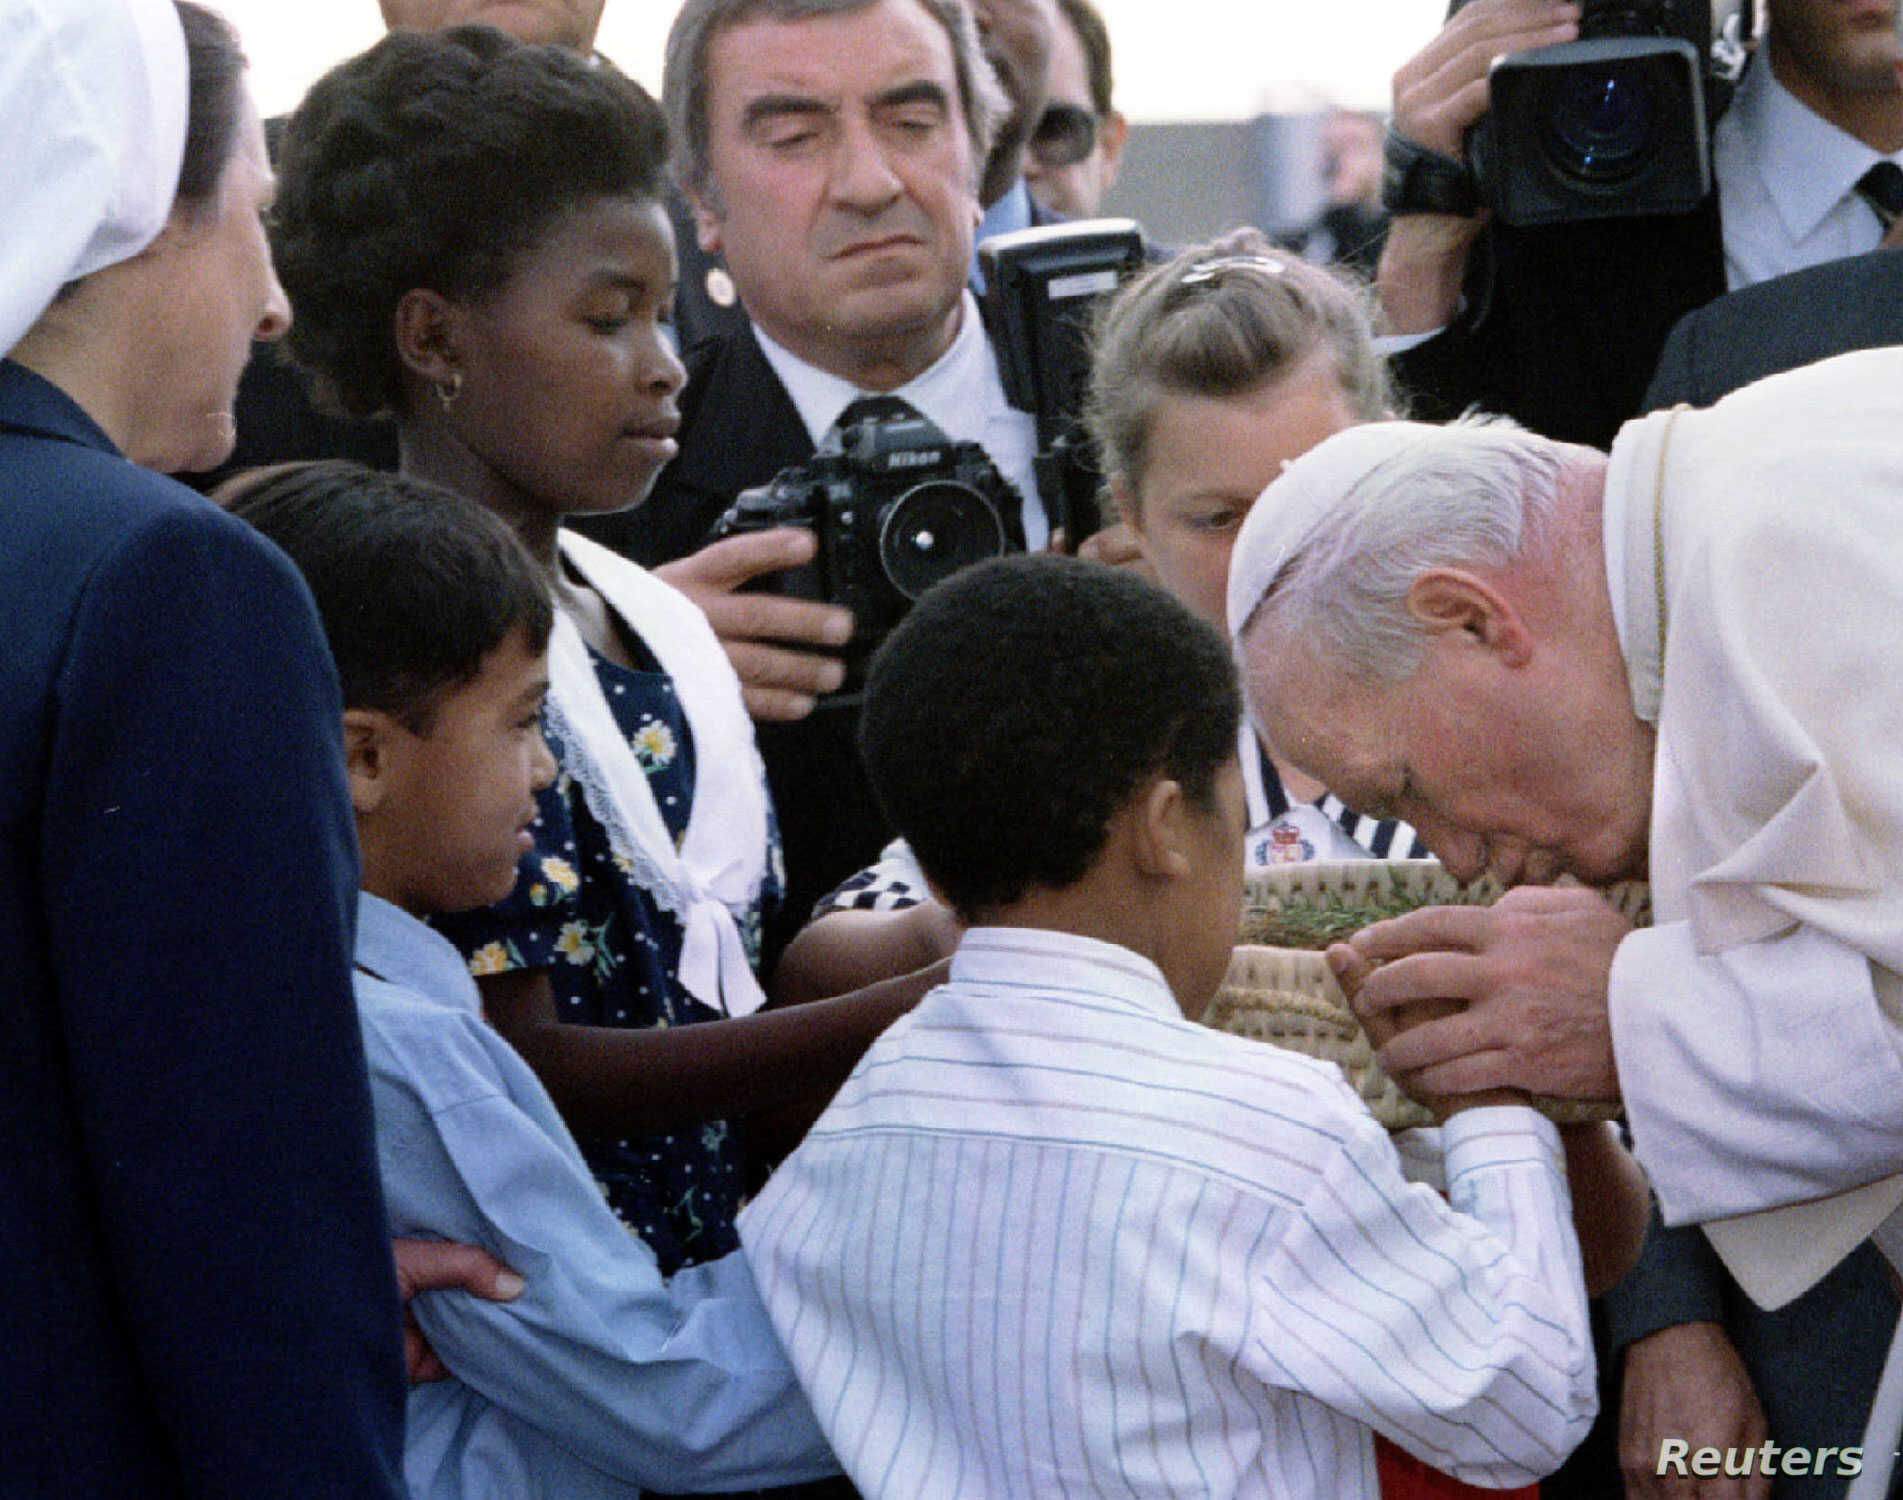 Pope John Paul II kisses a basket of South African soil presented to him by four children of different races as he arrives at Johannesburg International Airport, Sept. 16, 1995, at the start of his first official visit to the country.